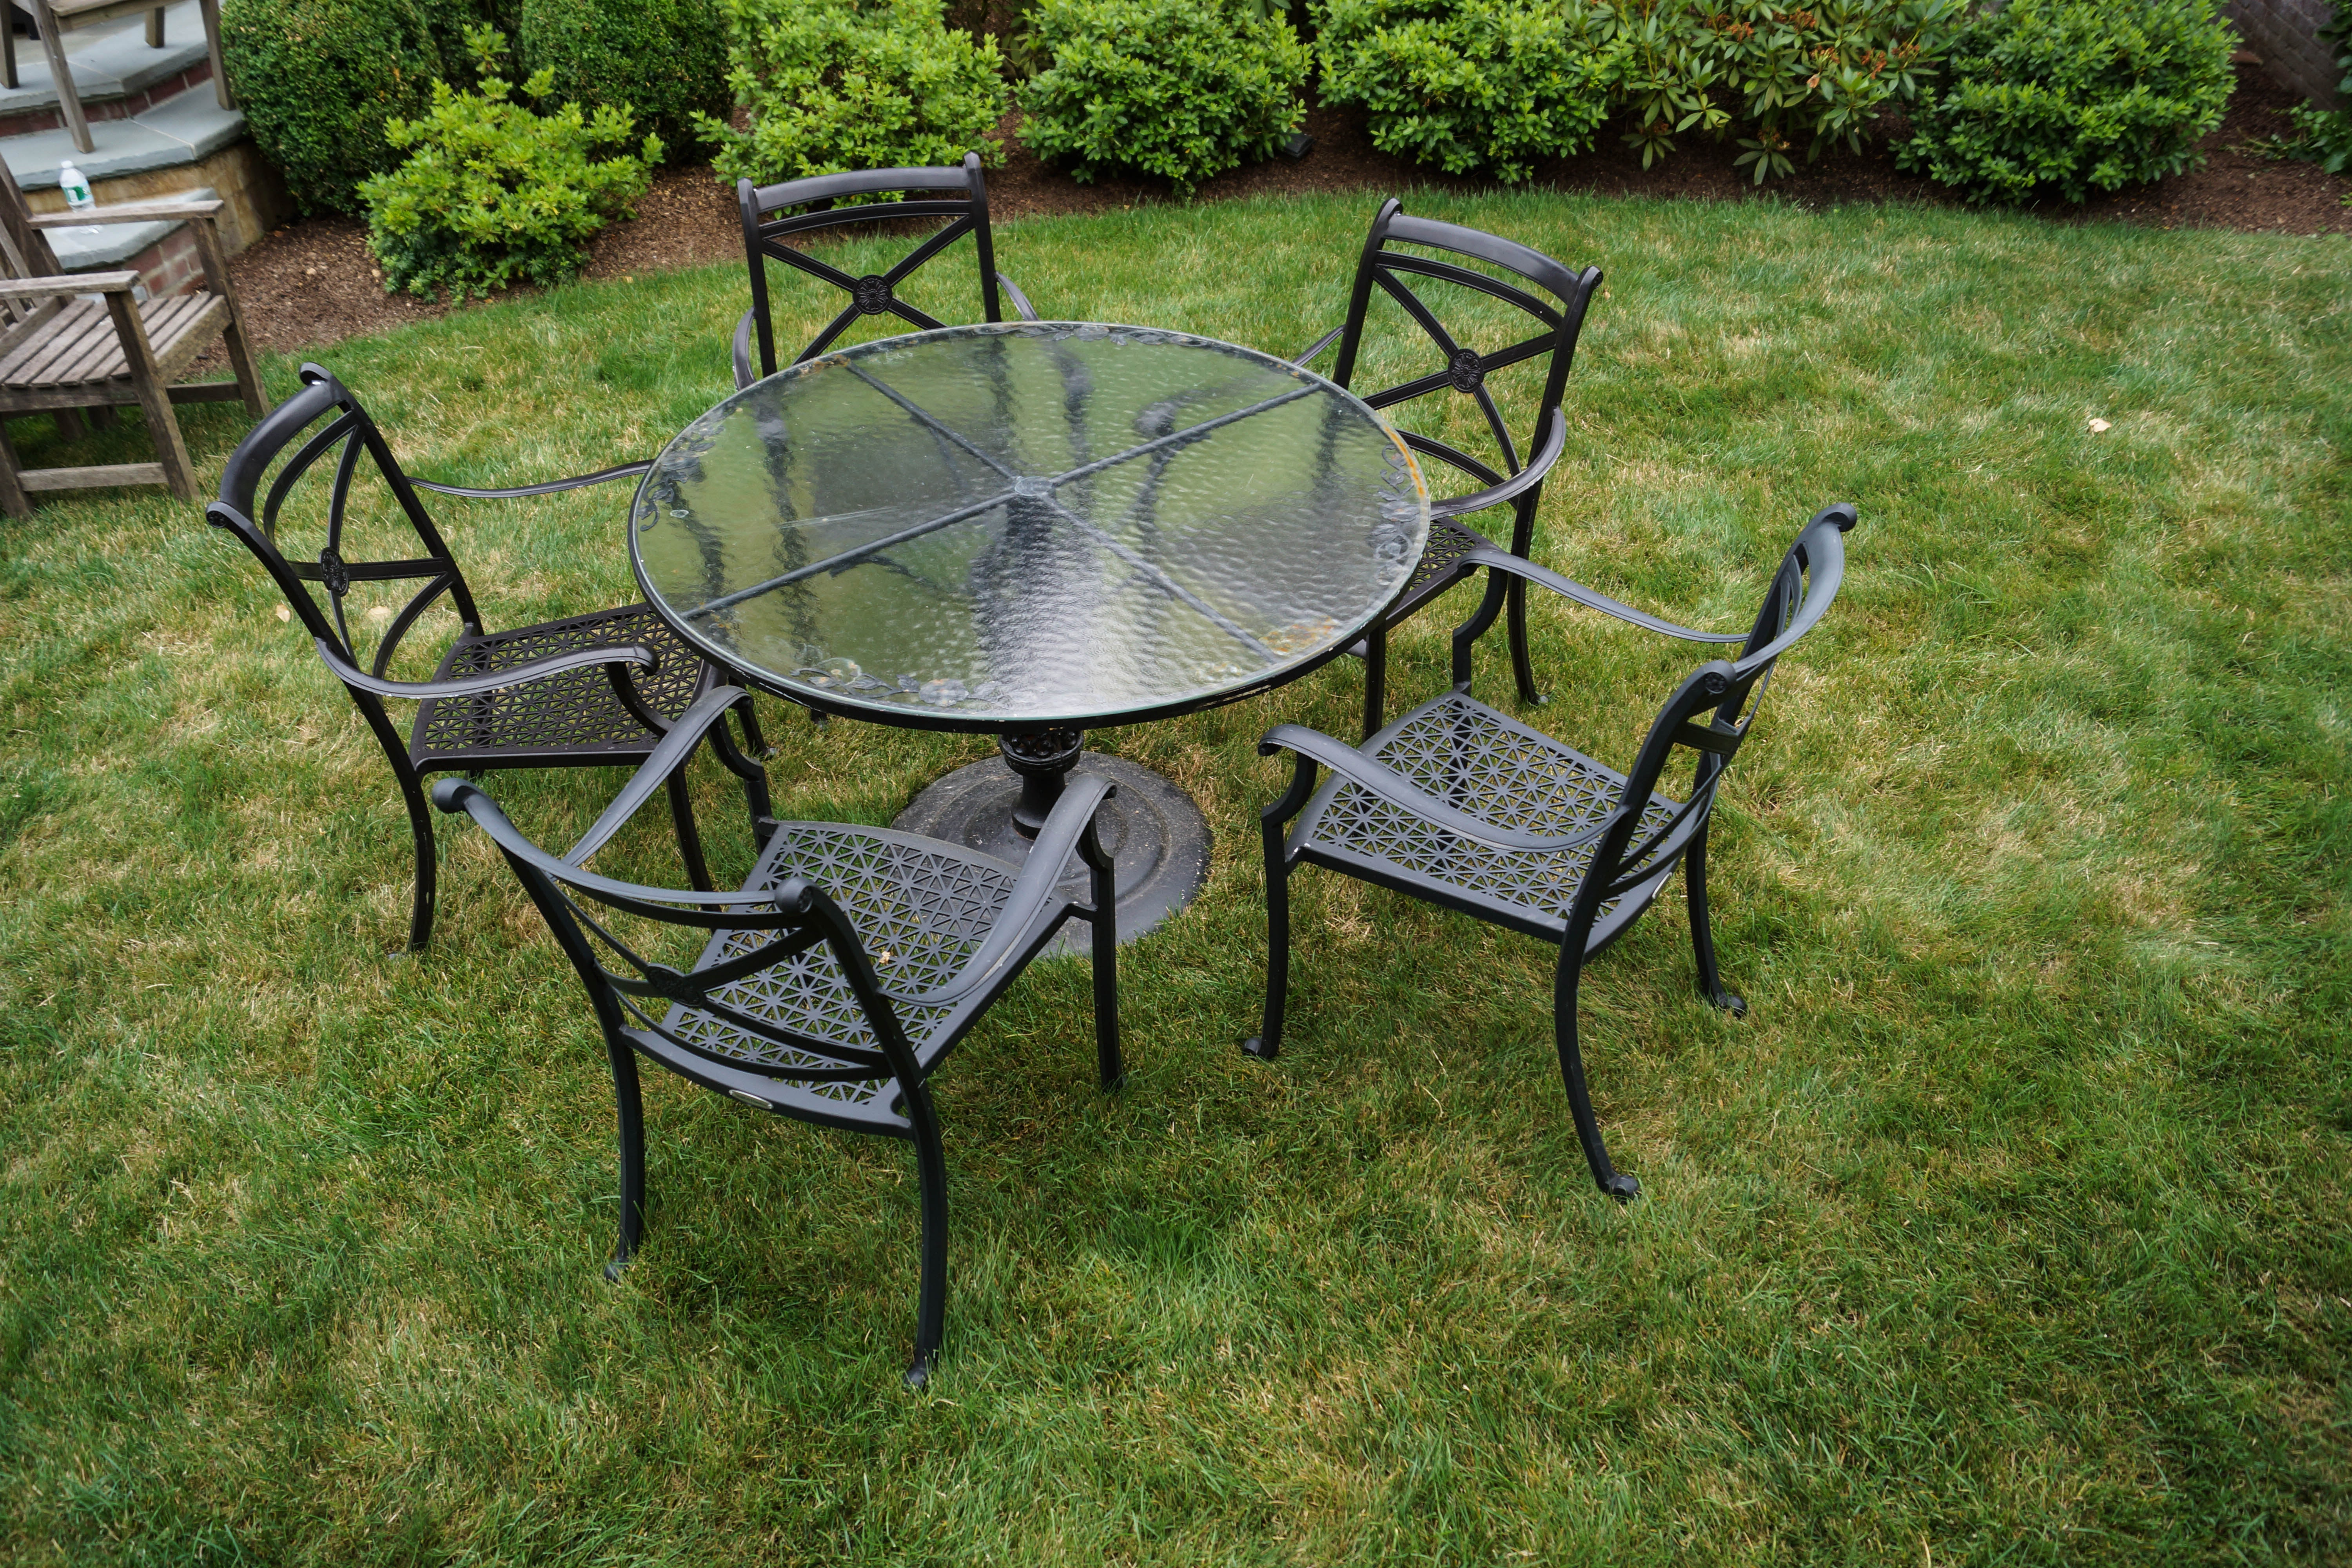 Smith & Hawken Outdoor Glass Topped Iron Table with Chairs EBTH